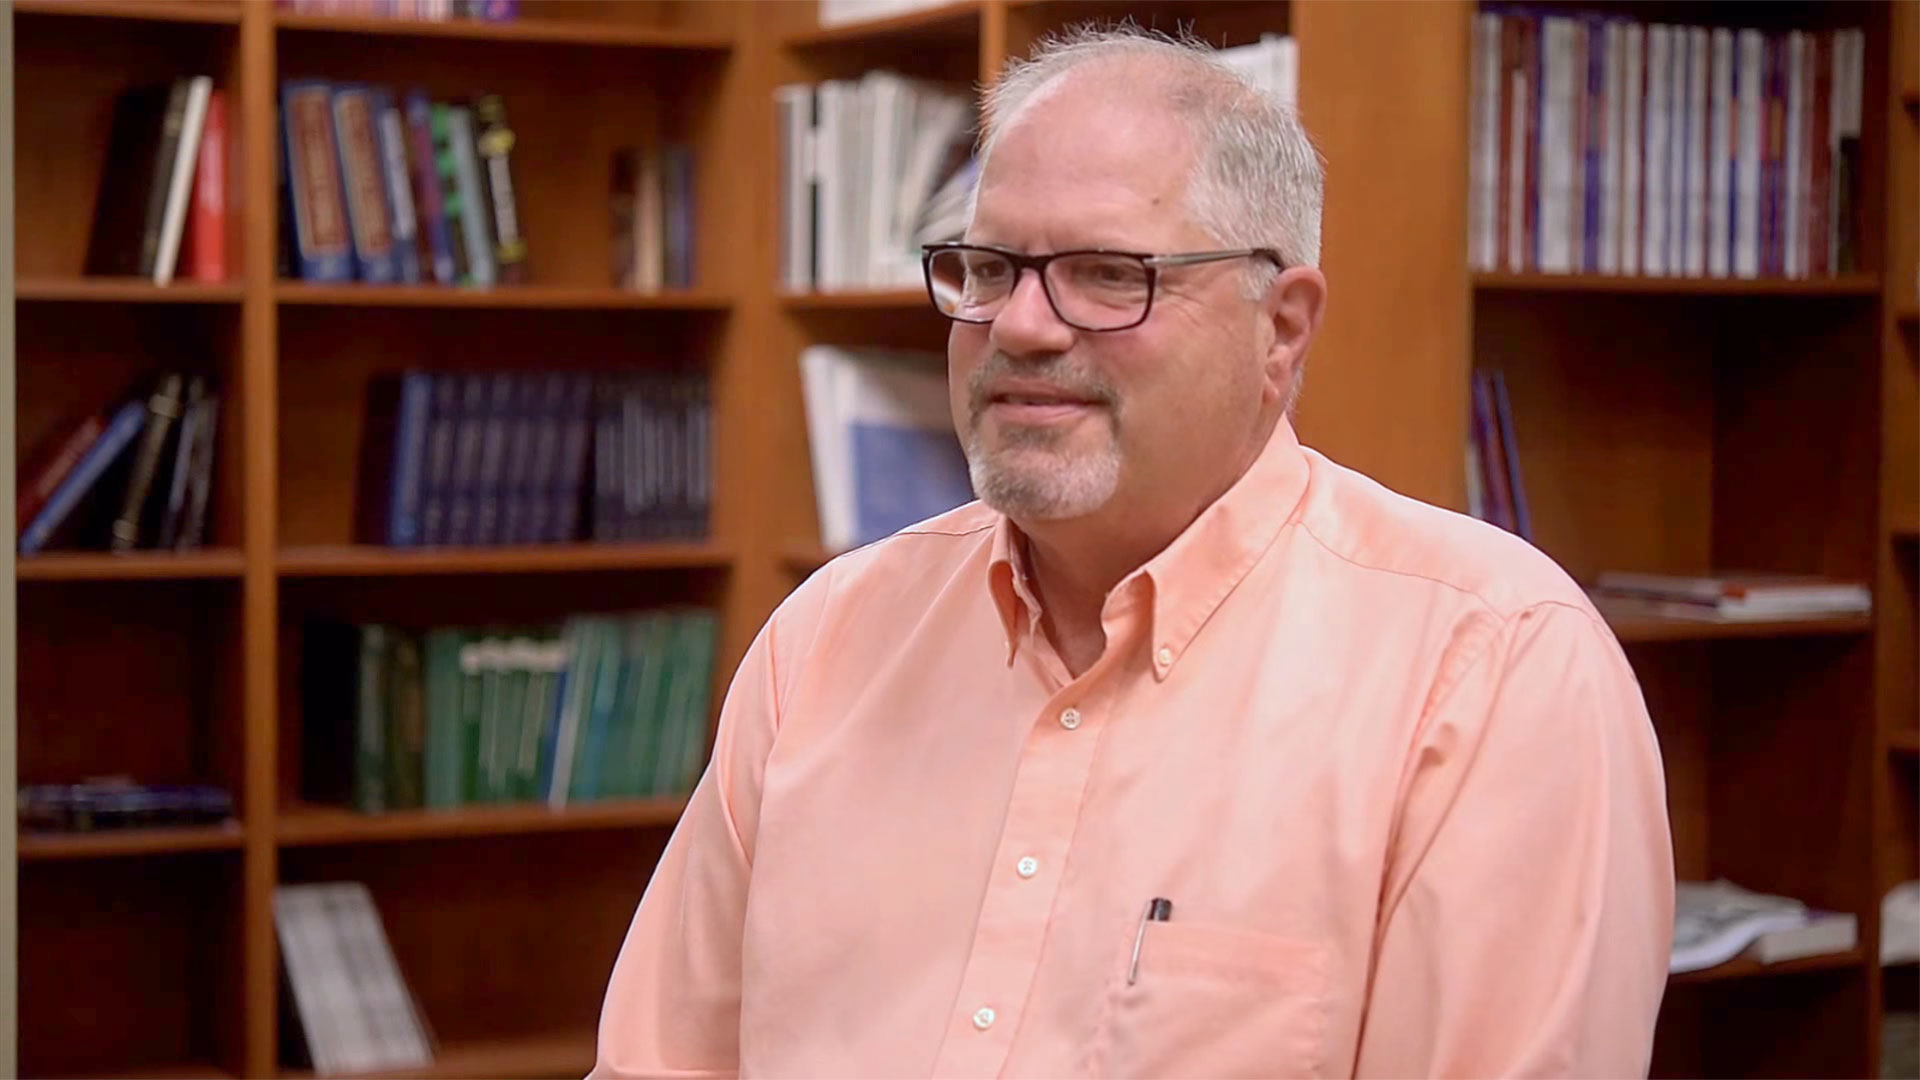 UF Health Neurology patient Steve Rhyne discusses his stroke care at UF Health Jacksonville